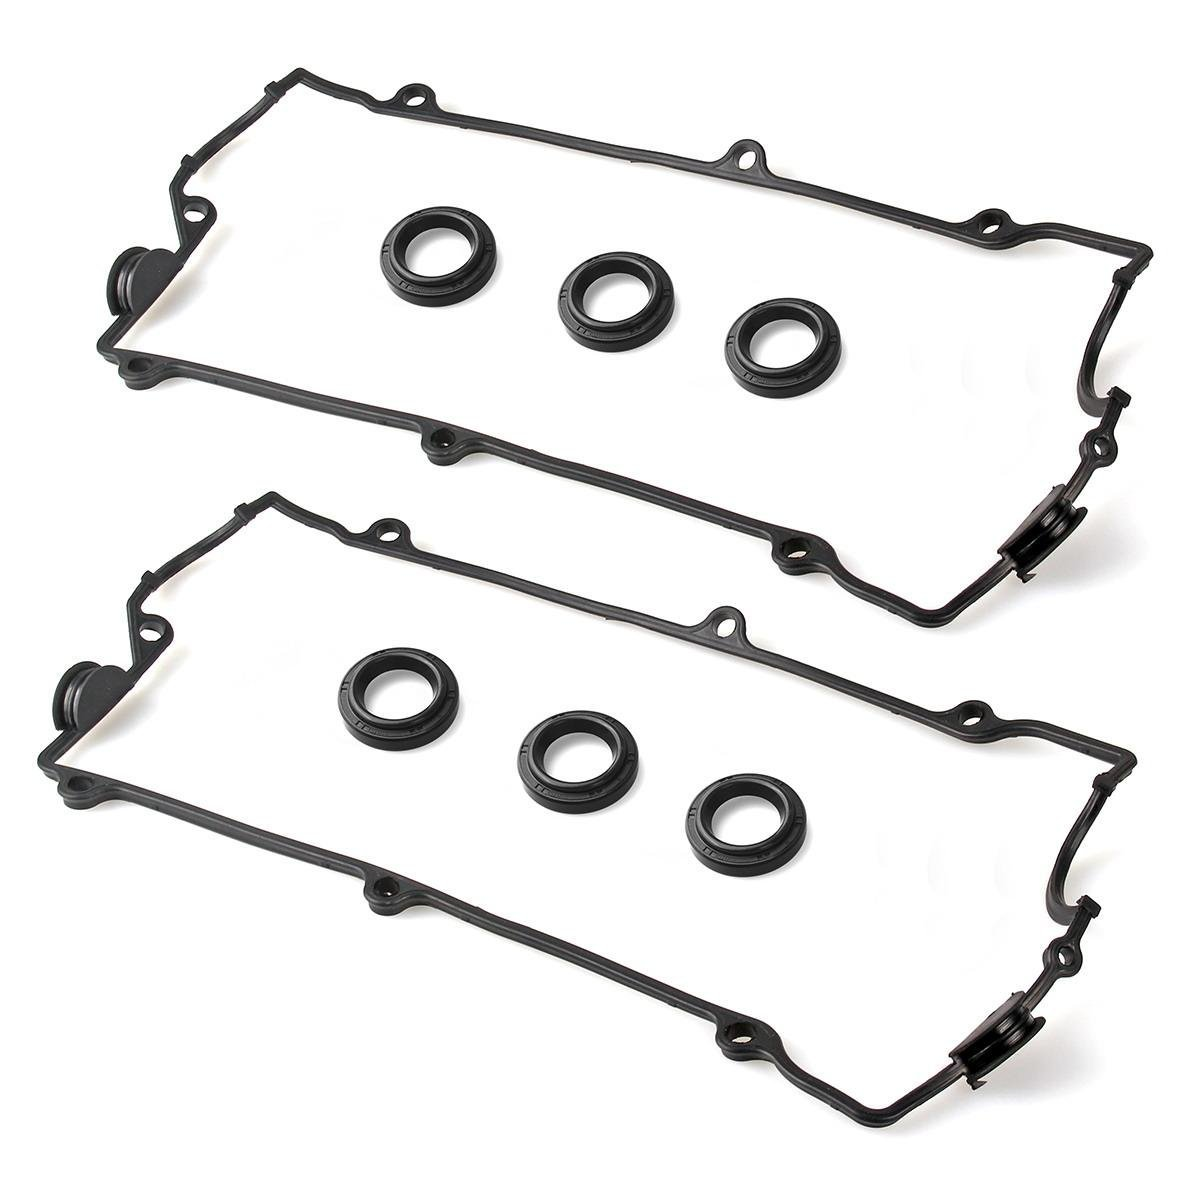 Vincos Engine Valve Cover Gasket Set Fits For Hyundai 2004 Kia Diagram Santa Fe 27l Dohc V6 24v Automotive